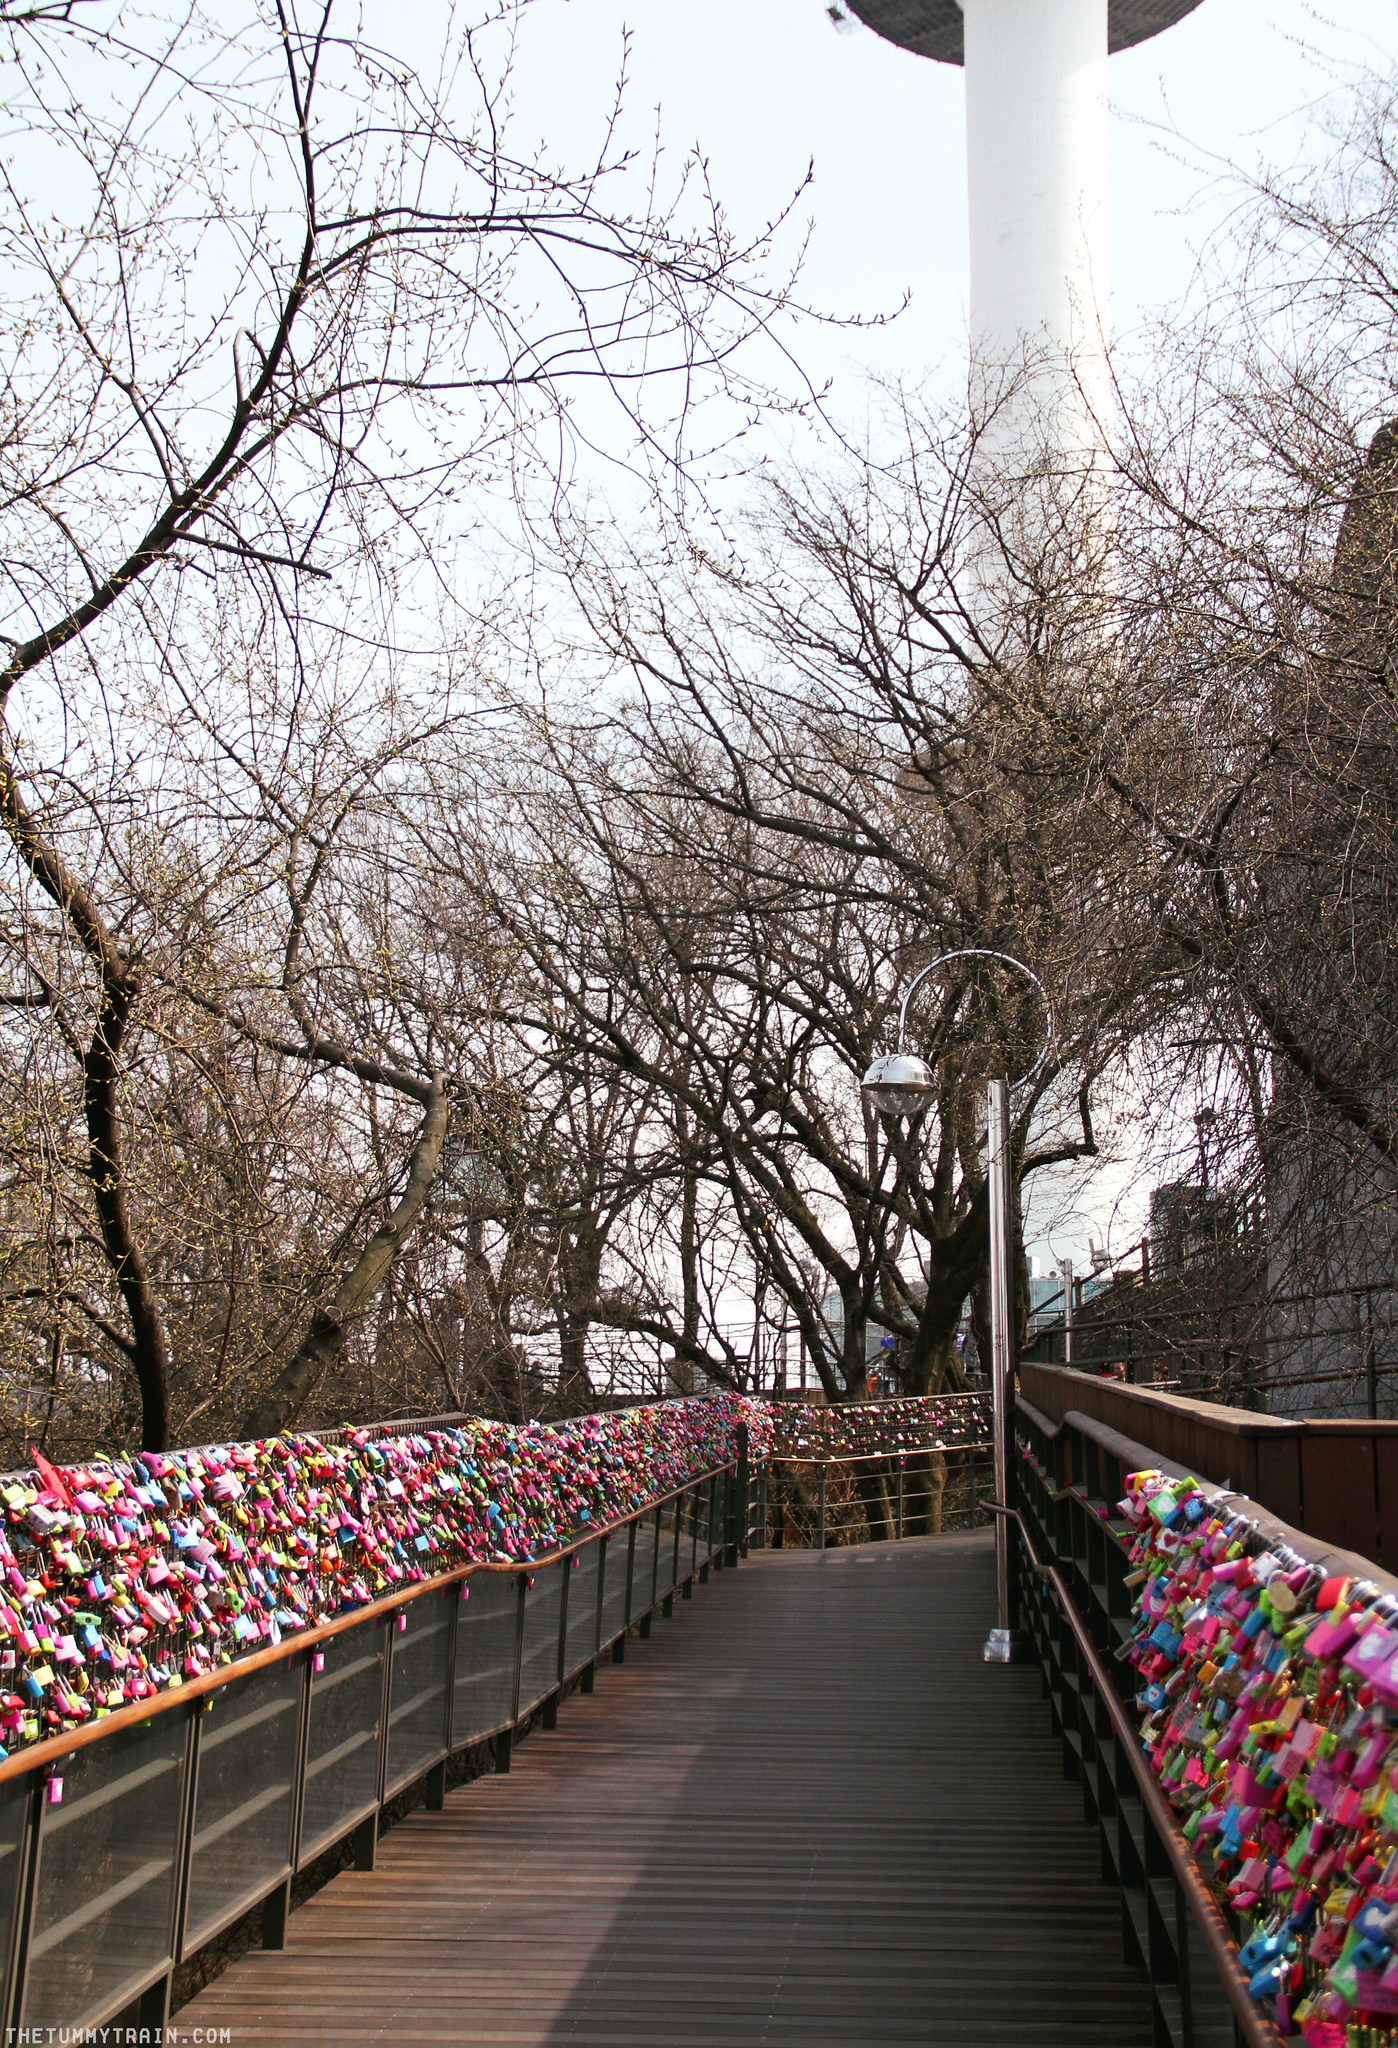 32757107123 e724fe8bca k - Seoul-ful Spring 2016: Playing Lovers in Korea at N Seoul Tower